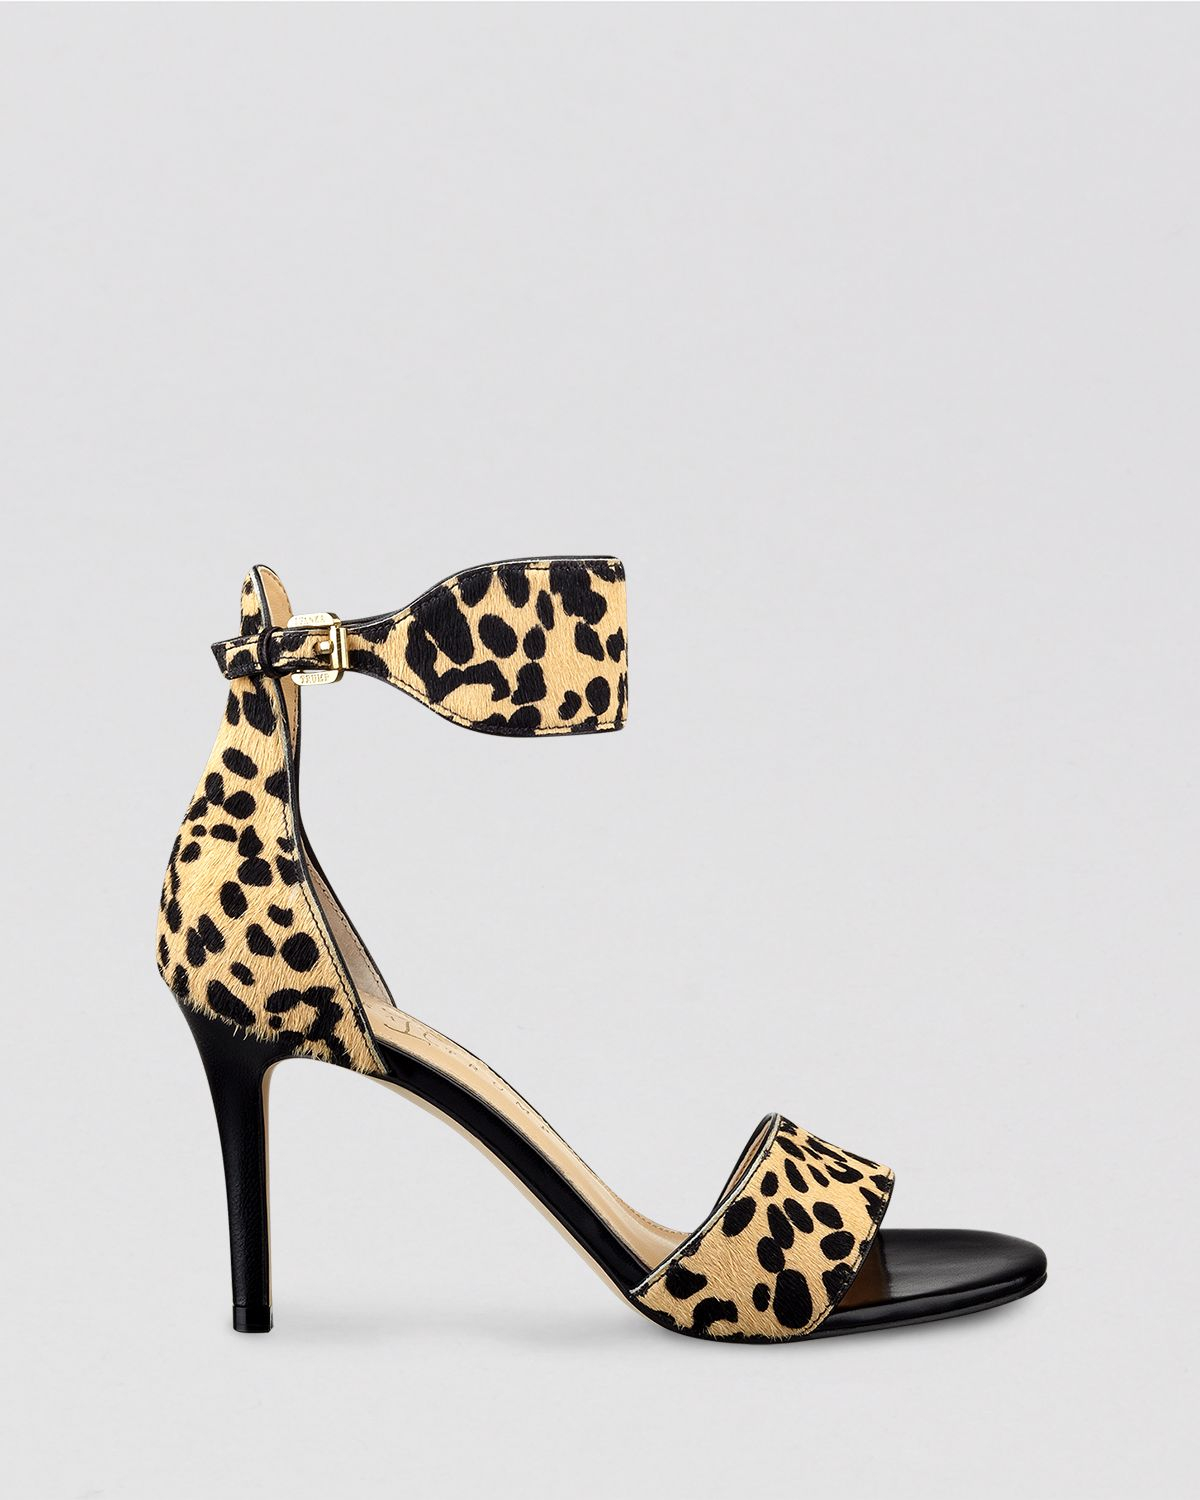 Ivanka Trump Open Toe Sandals - Gelana Leopard Print High Heel in ...